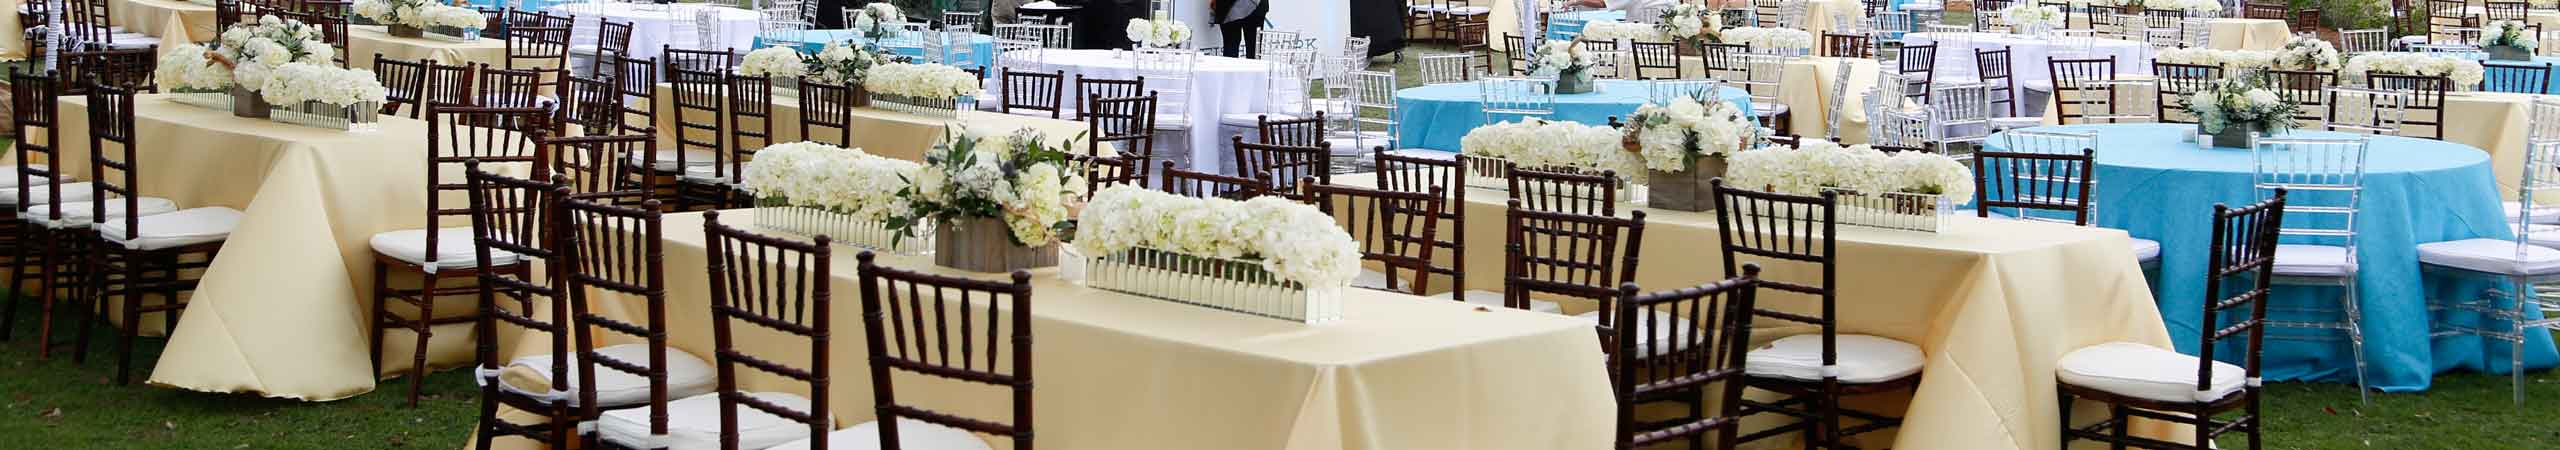 Jacksonville Table Rentals